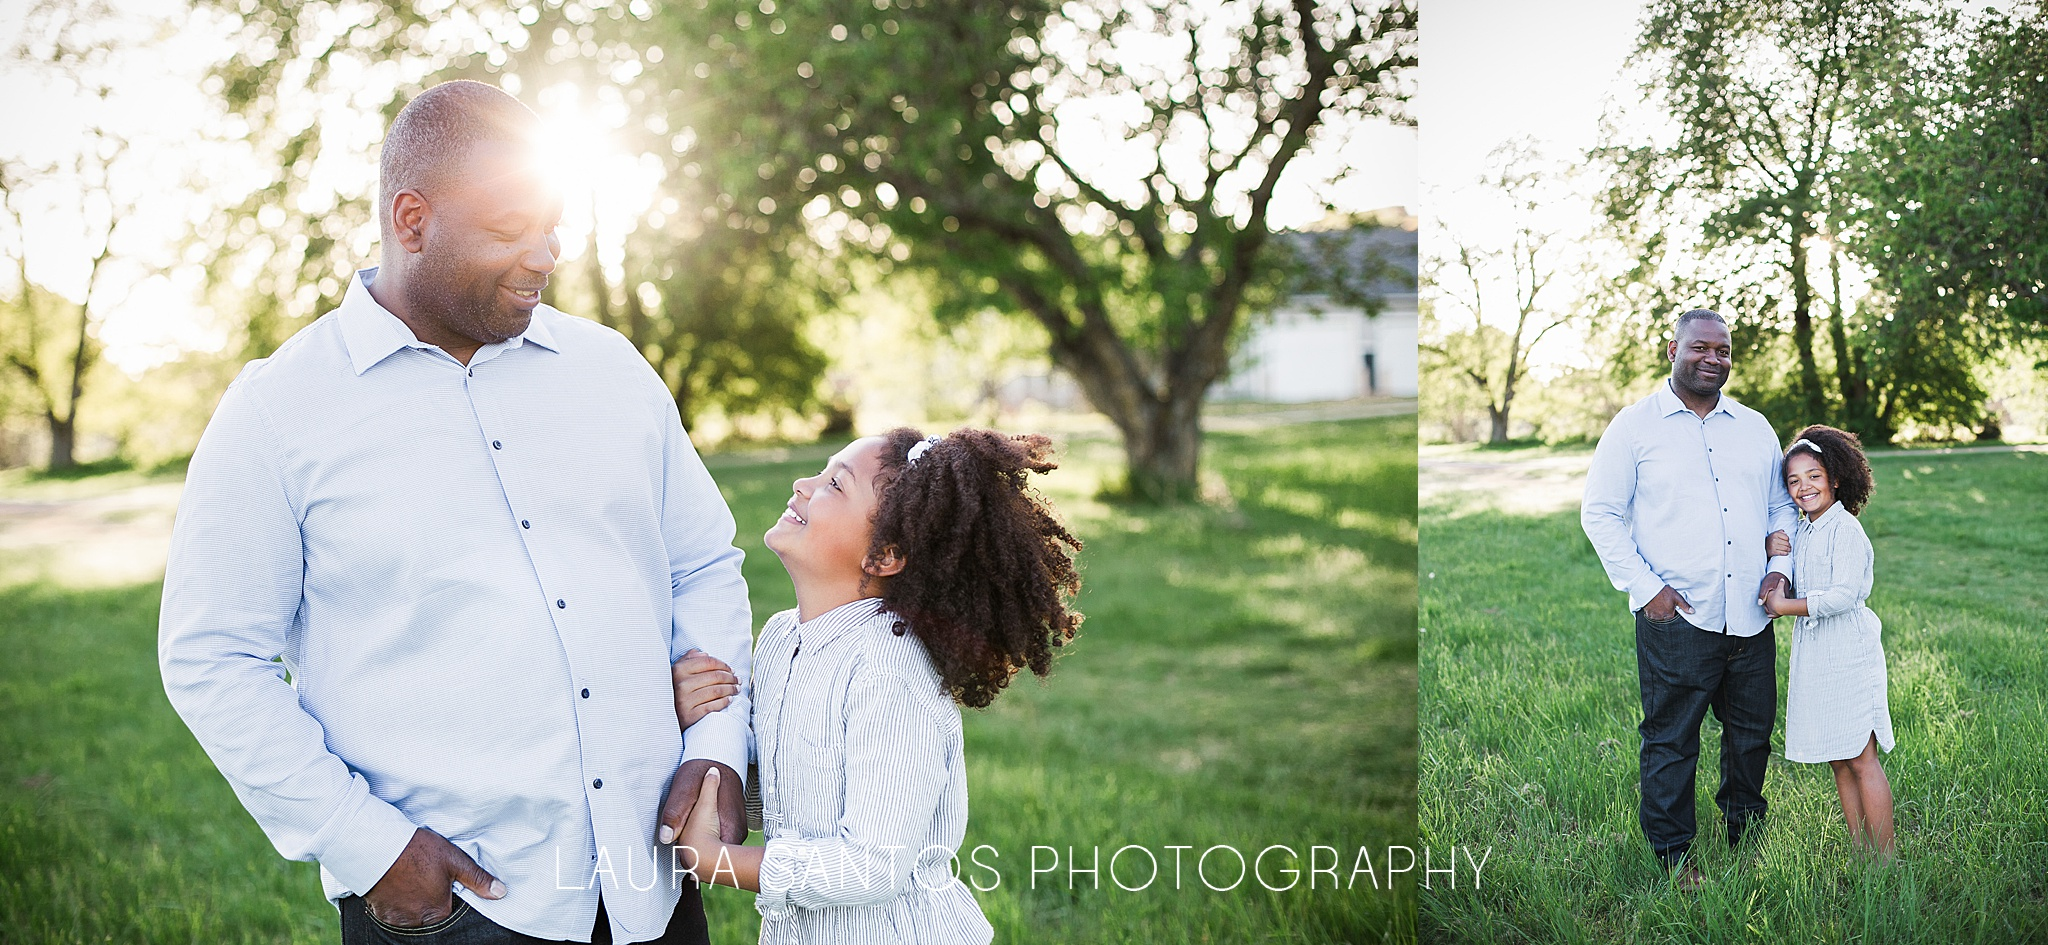 Laura Santos Photography Portland Oregon Family Photographer_0938.jpg